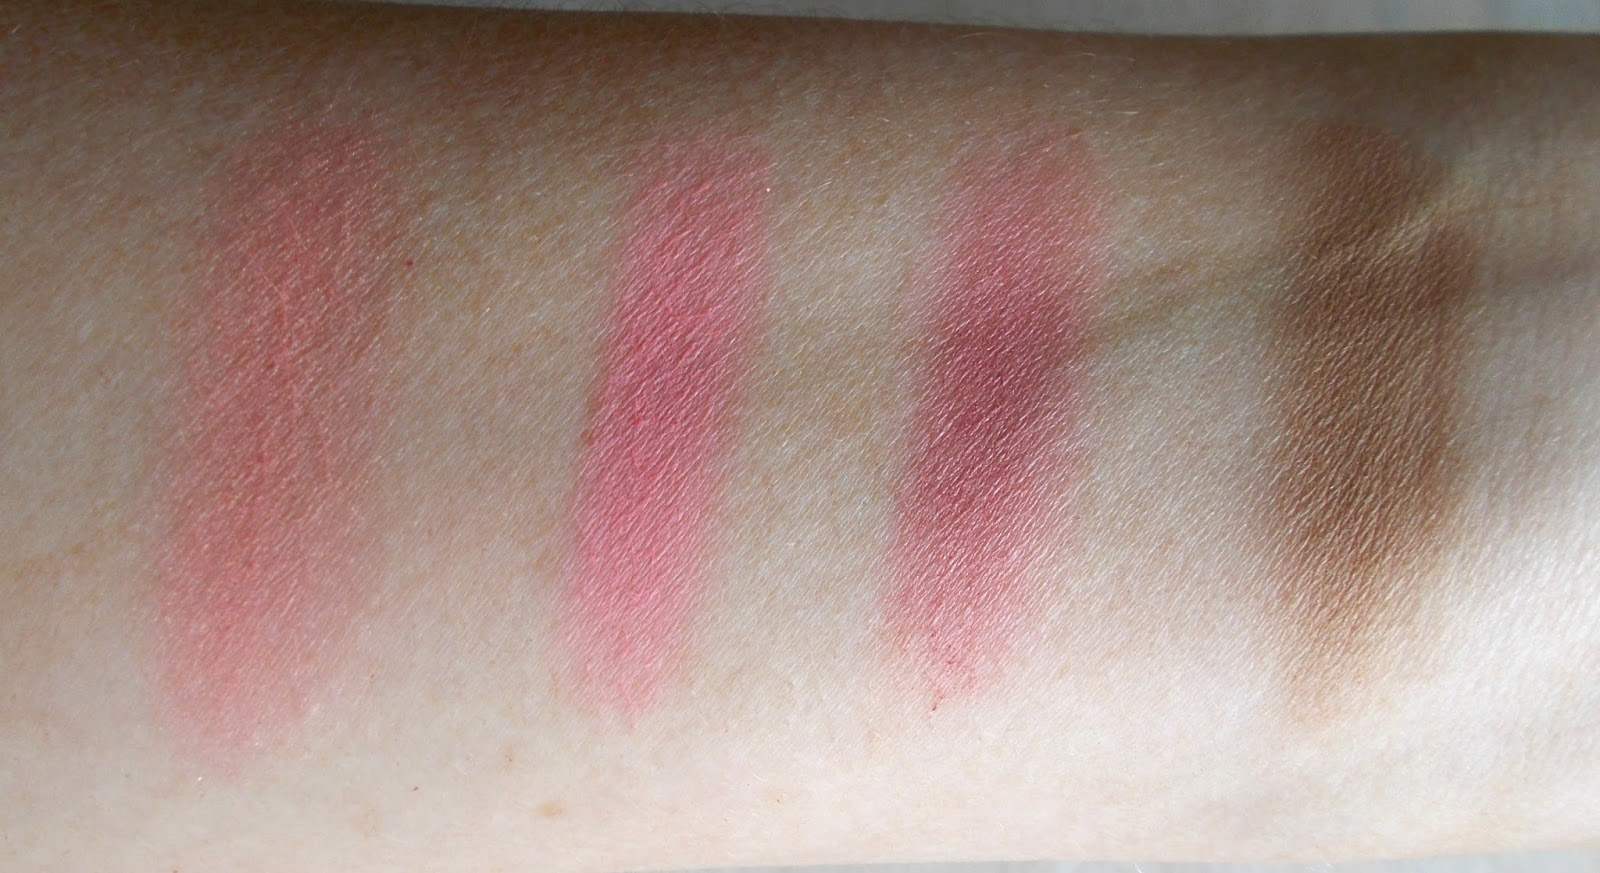 In the Balm of your Hand blush swatches